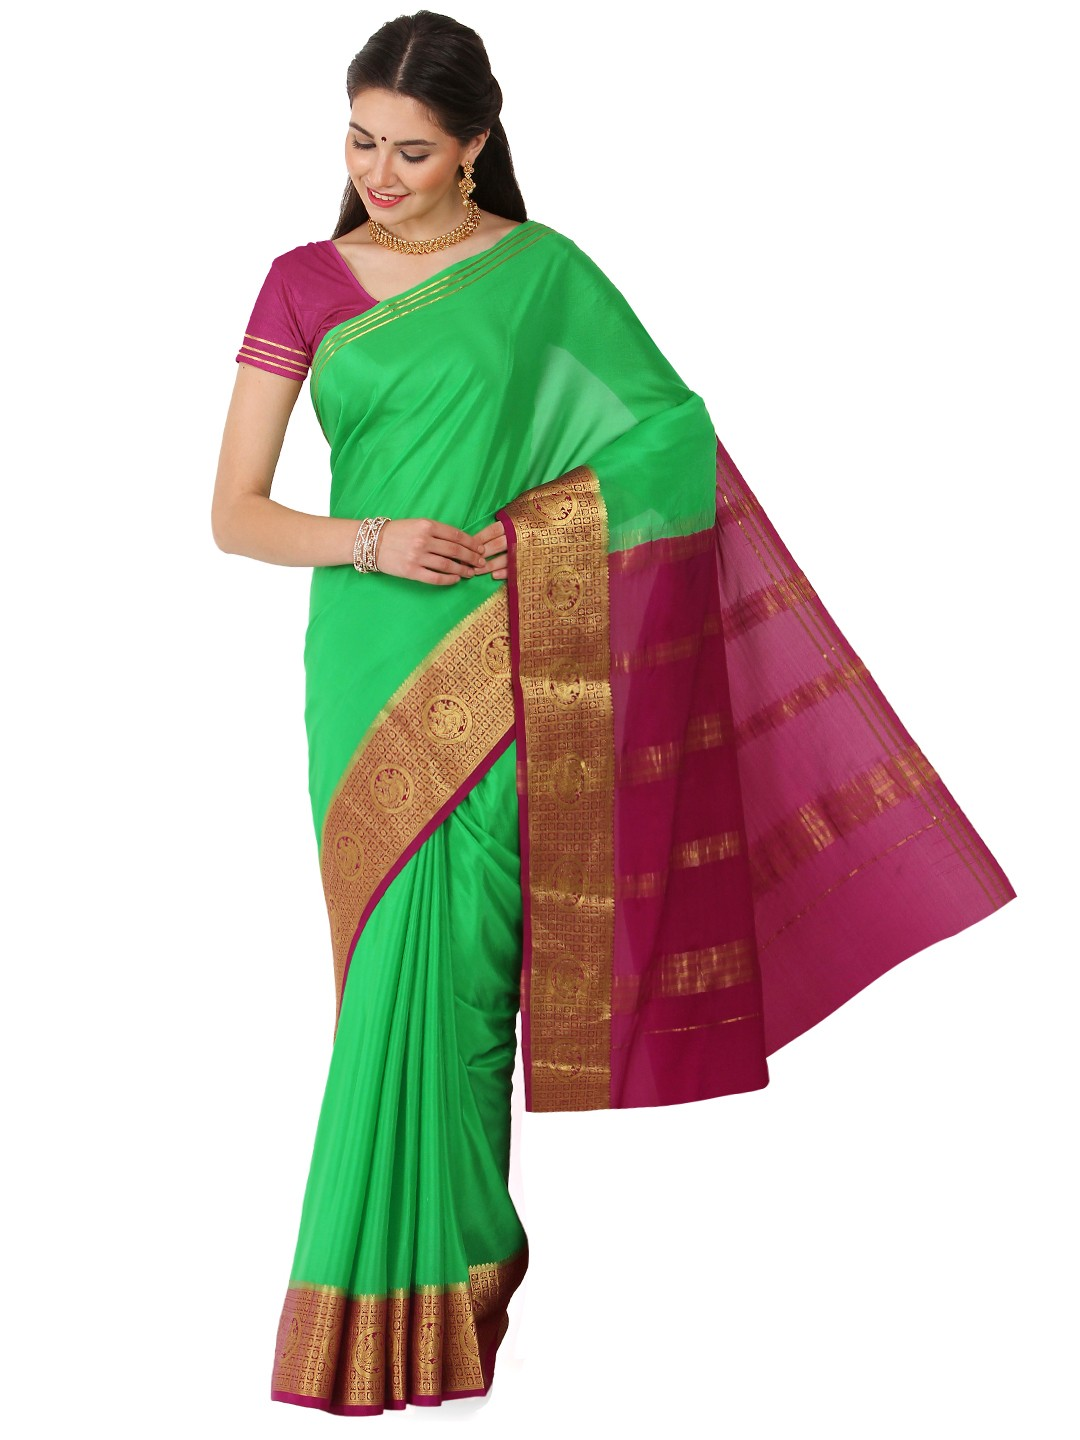 Kaushika 100% Pure Crepe Mysore Traditional silk saree  KC25028_Parrot Green_Megenta